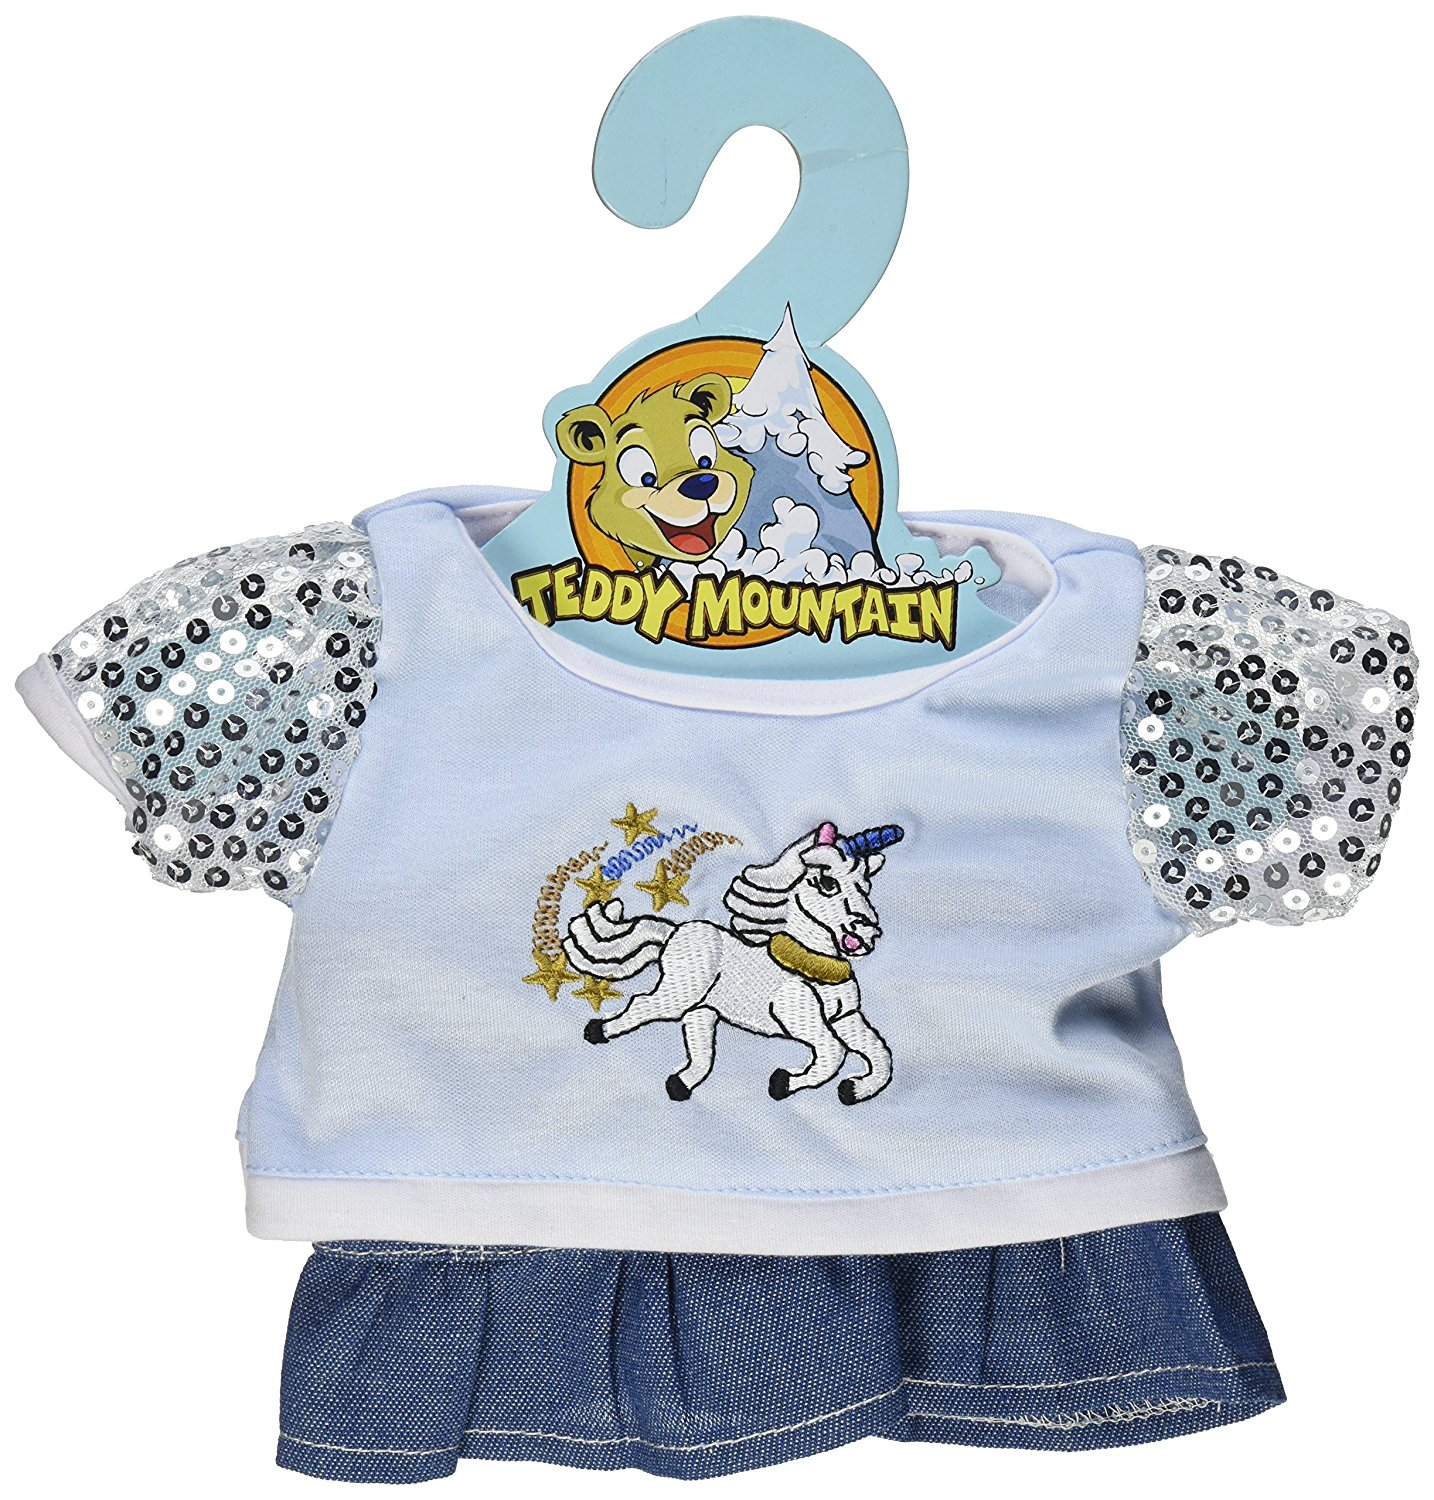 Unicorn Glitter Outfit Teddy Bear Clothes Outfit Fits Most 14 18